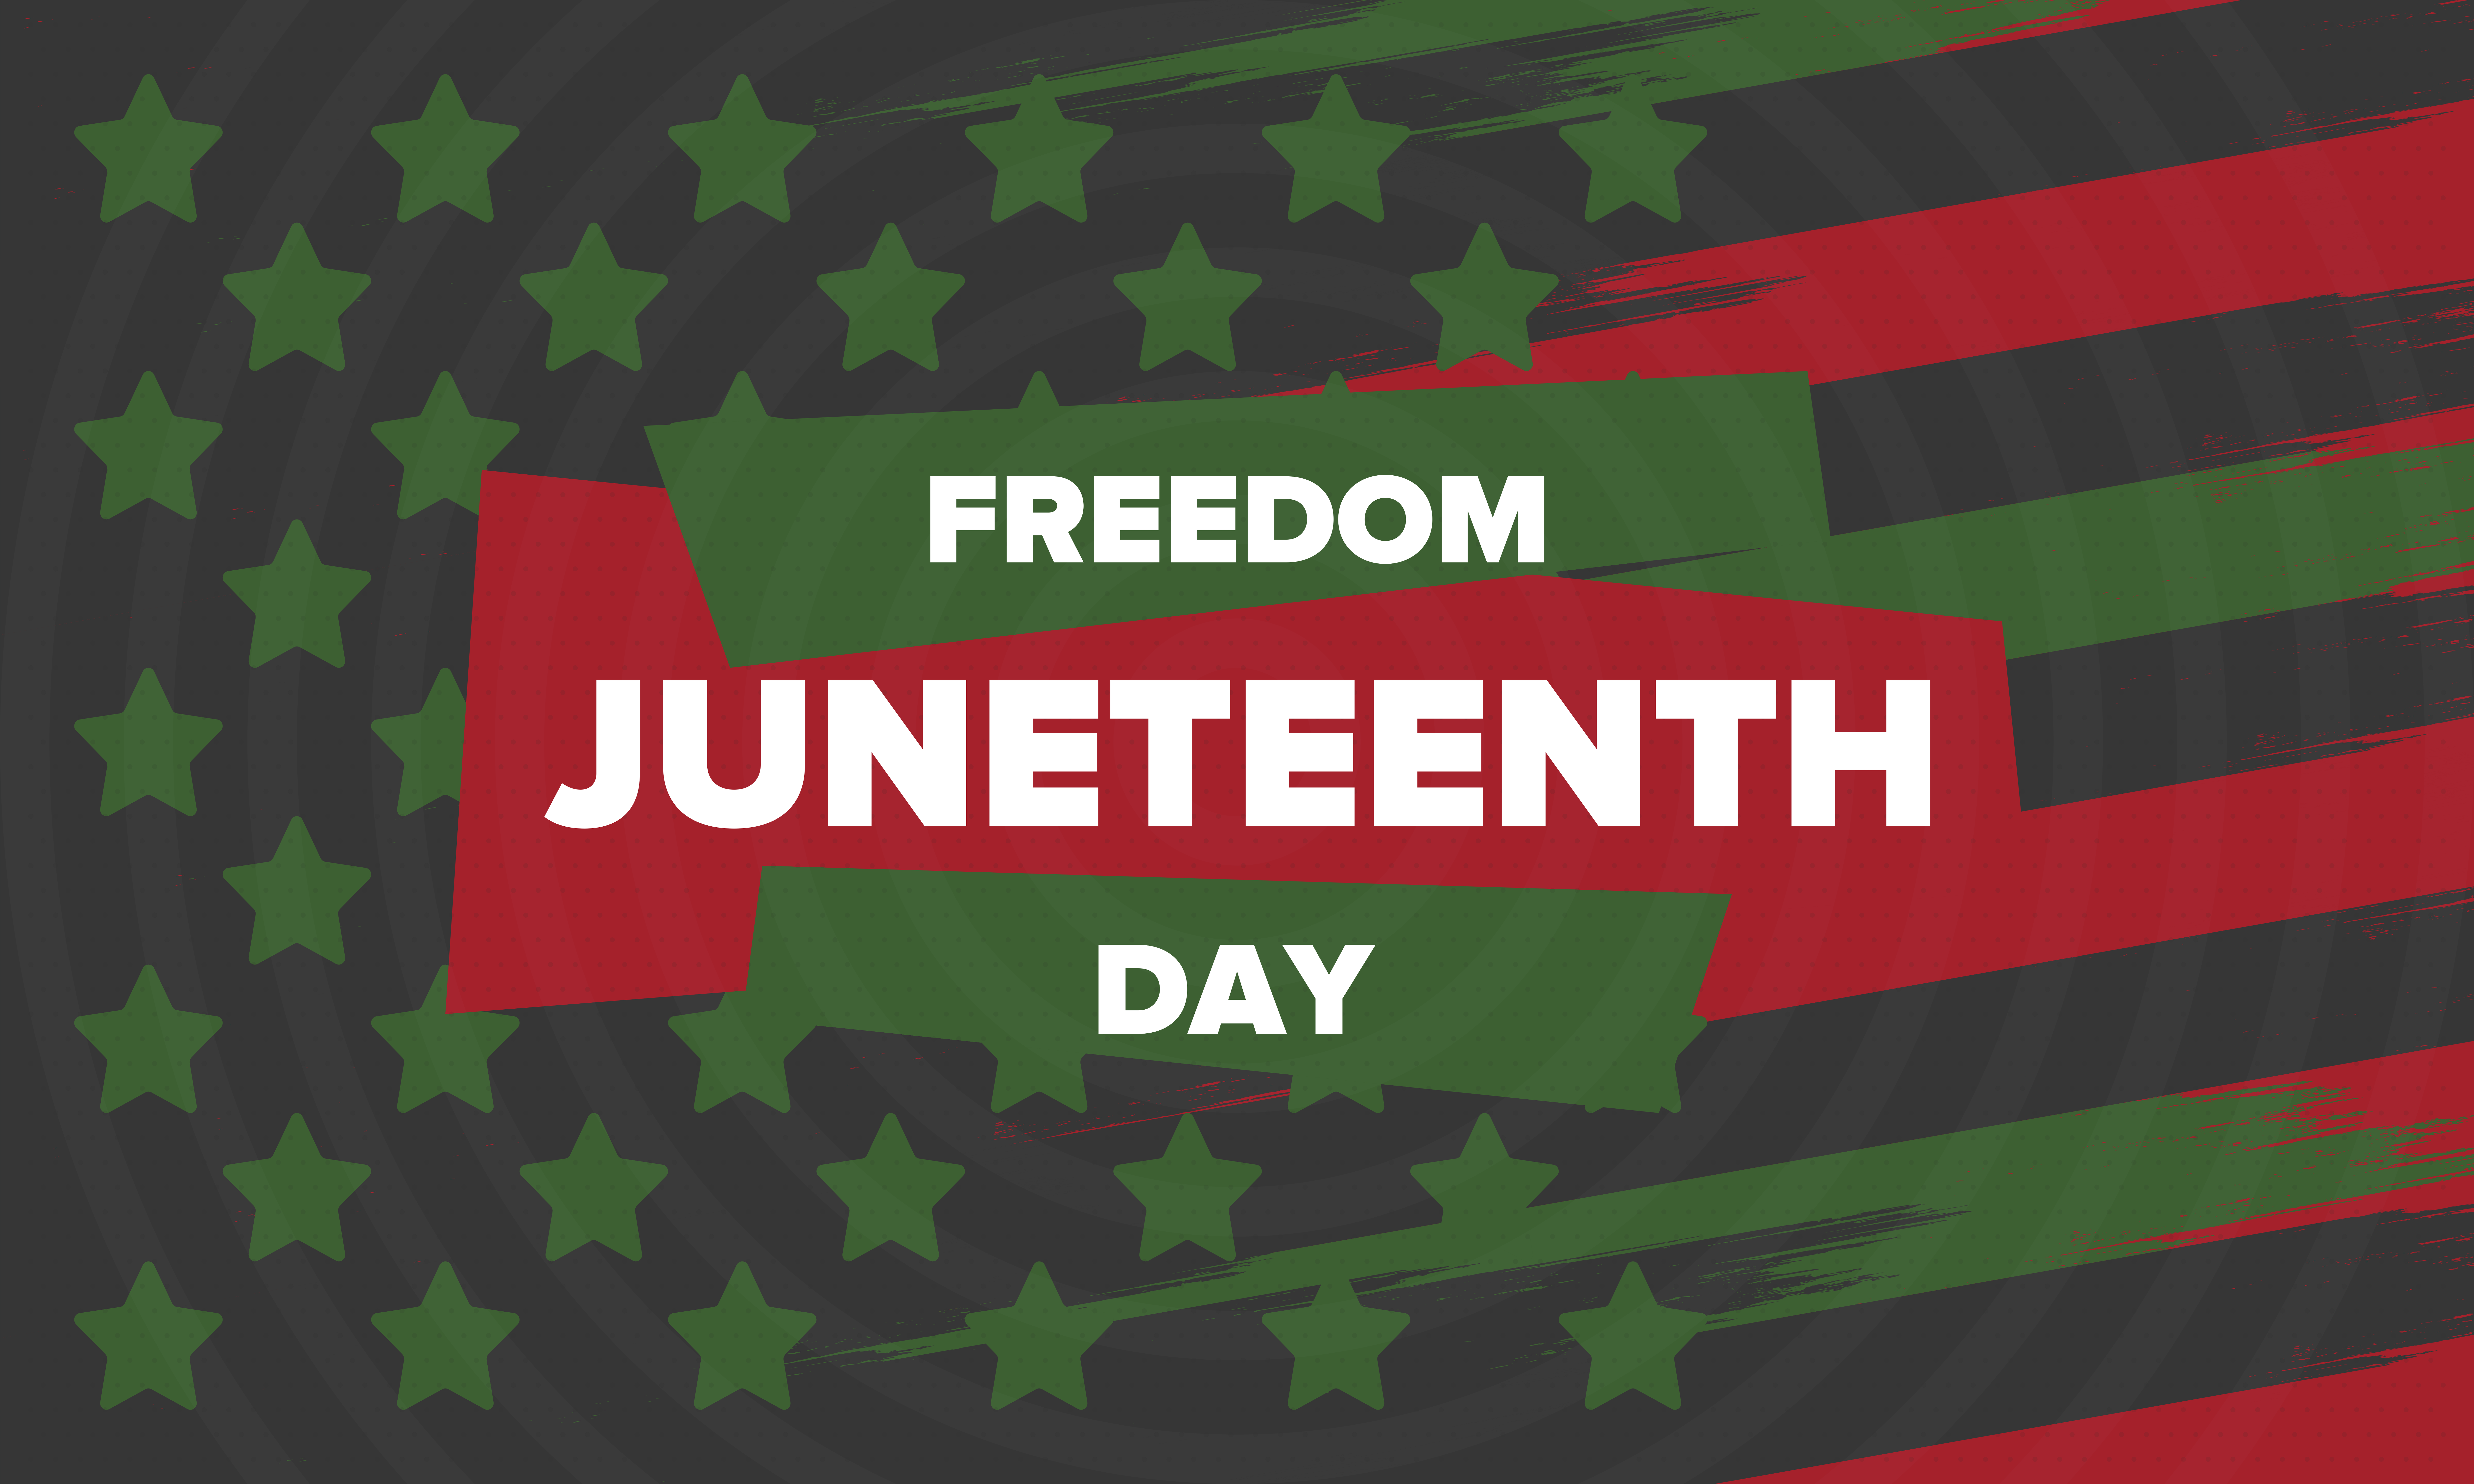 American Independence Day #2: Juneteenth